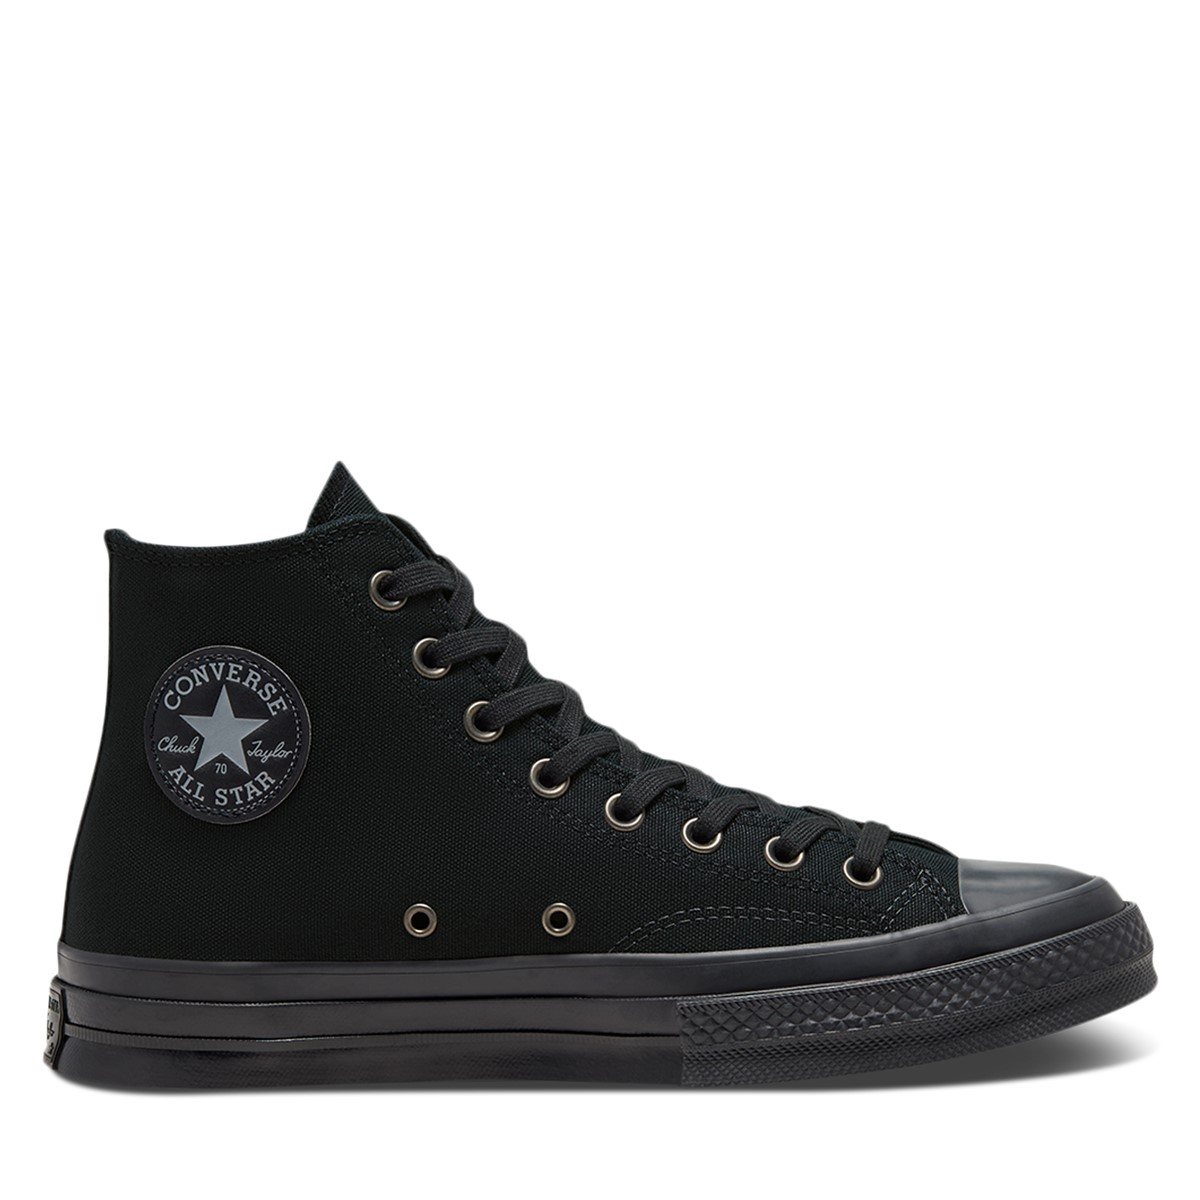 Chuck 70 Hi Sneakers in Black